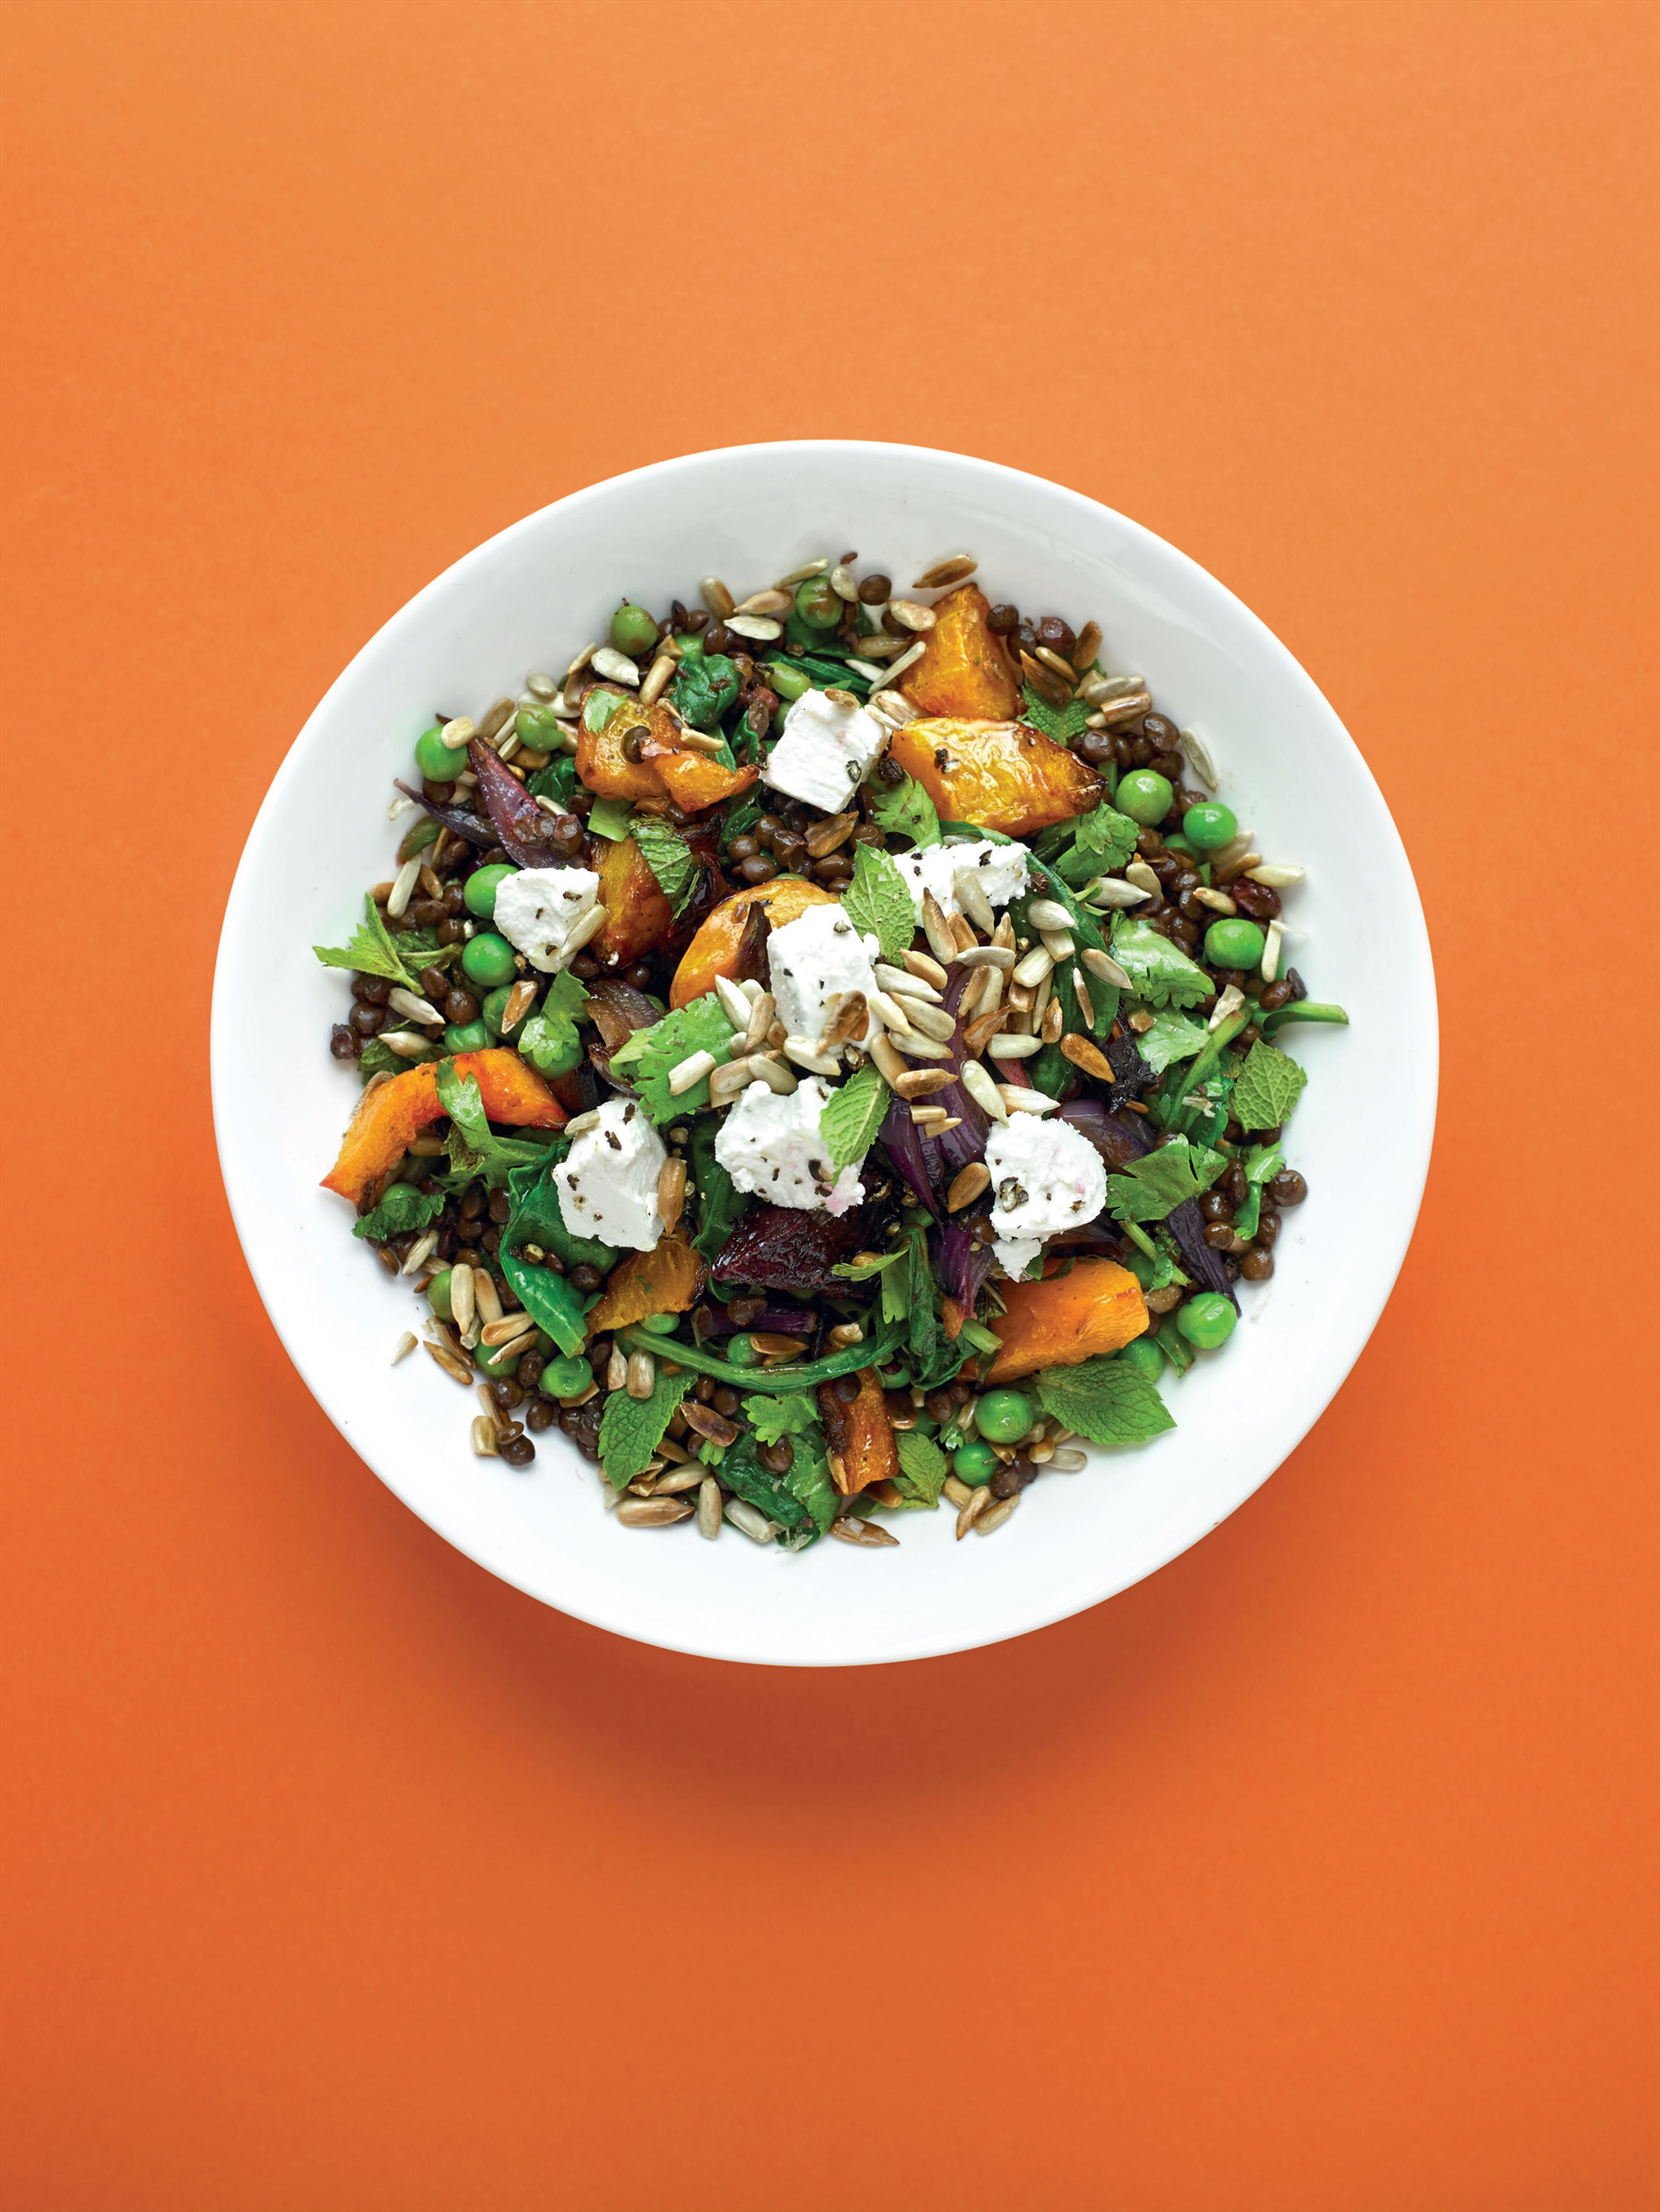 Roast beetroot, squash and lentil salad with goat's cheese